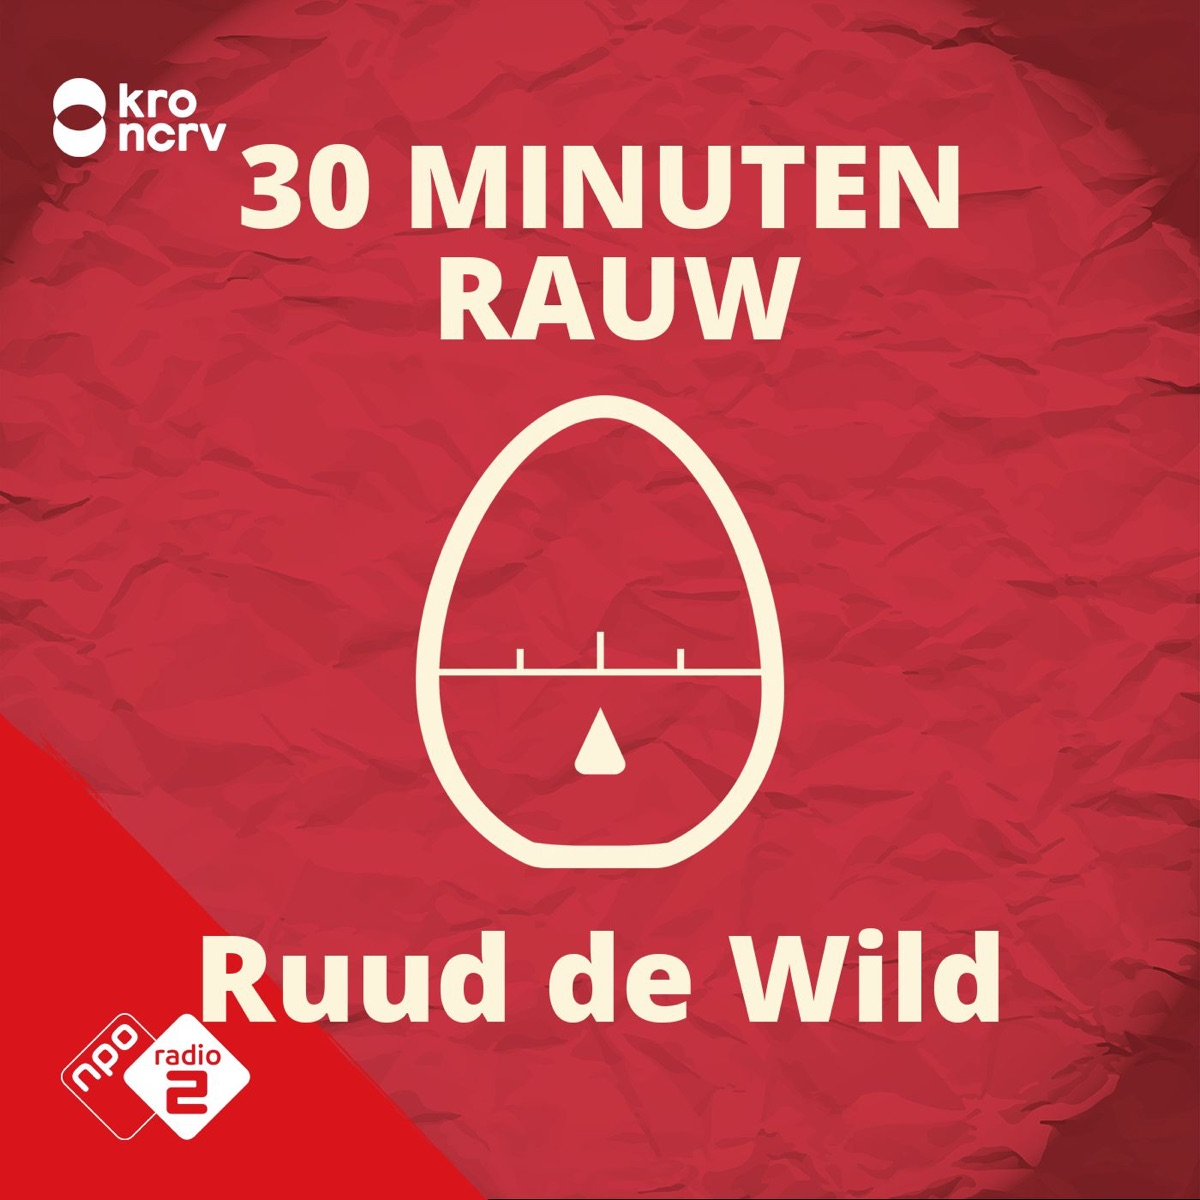 RAUW IN QUARANTAINE met Mick van Wely